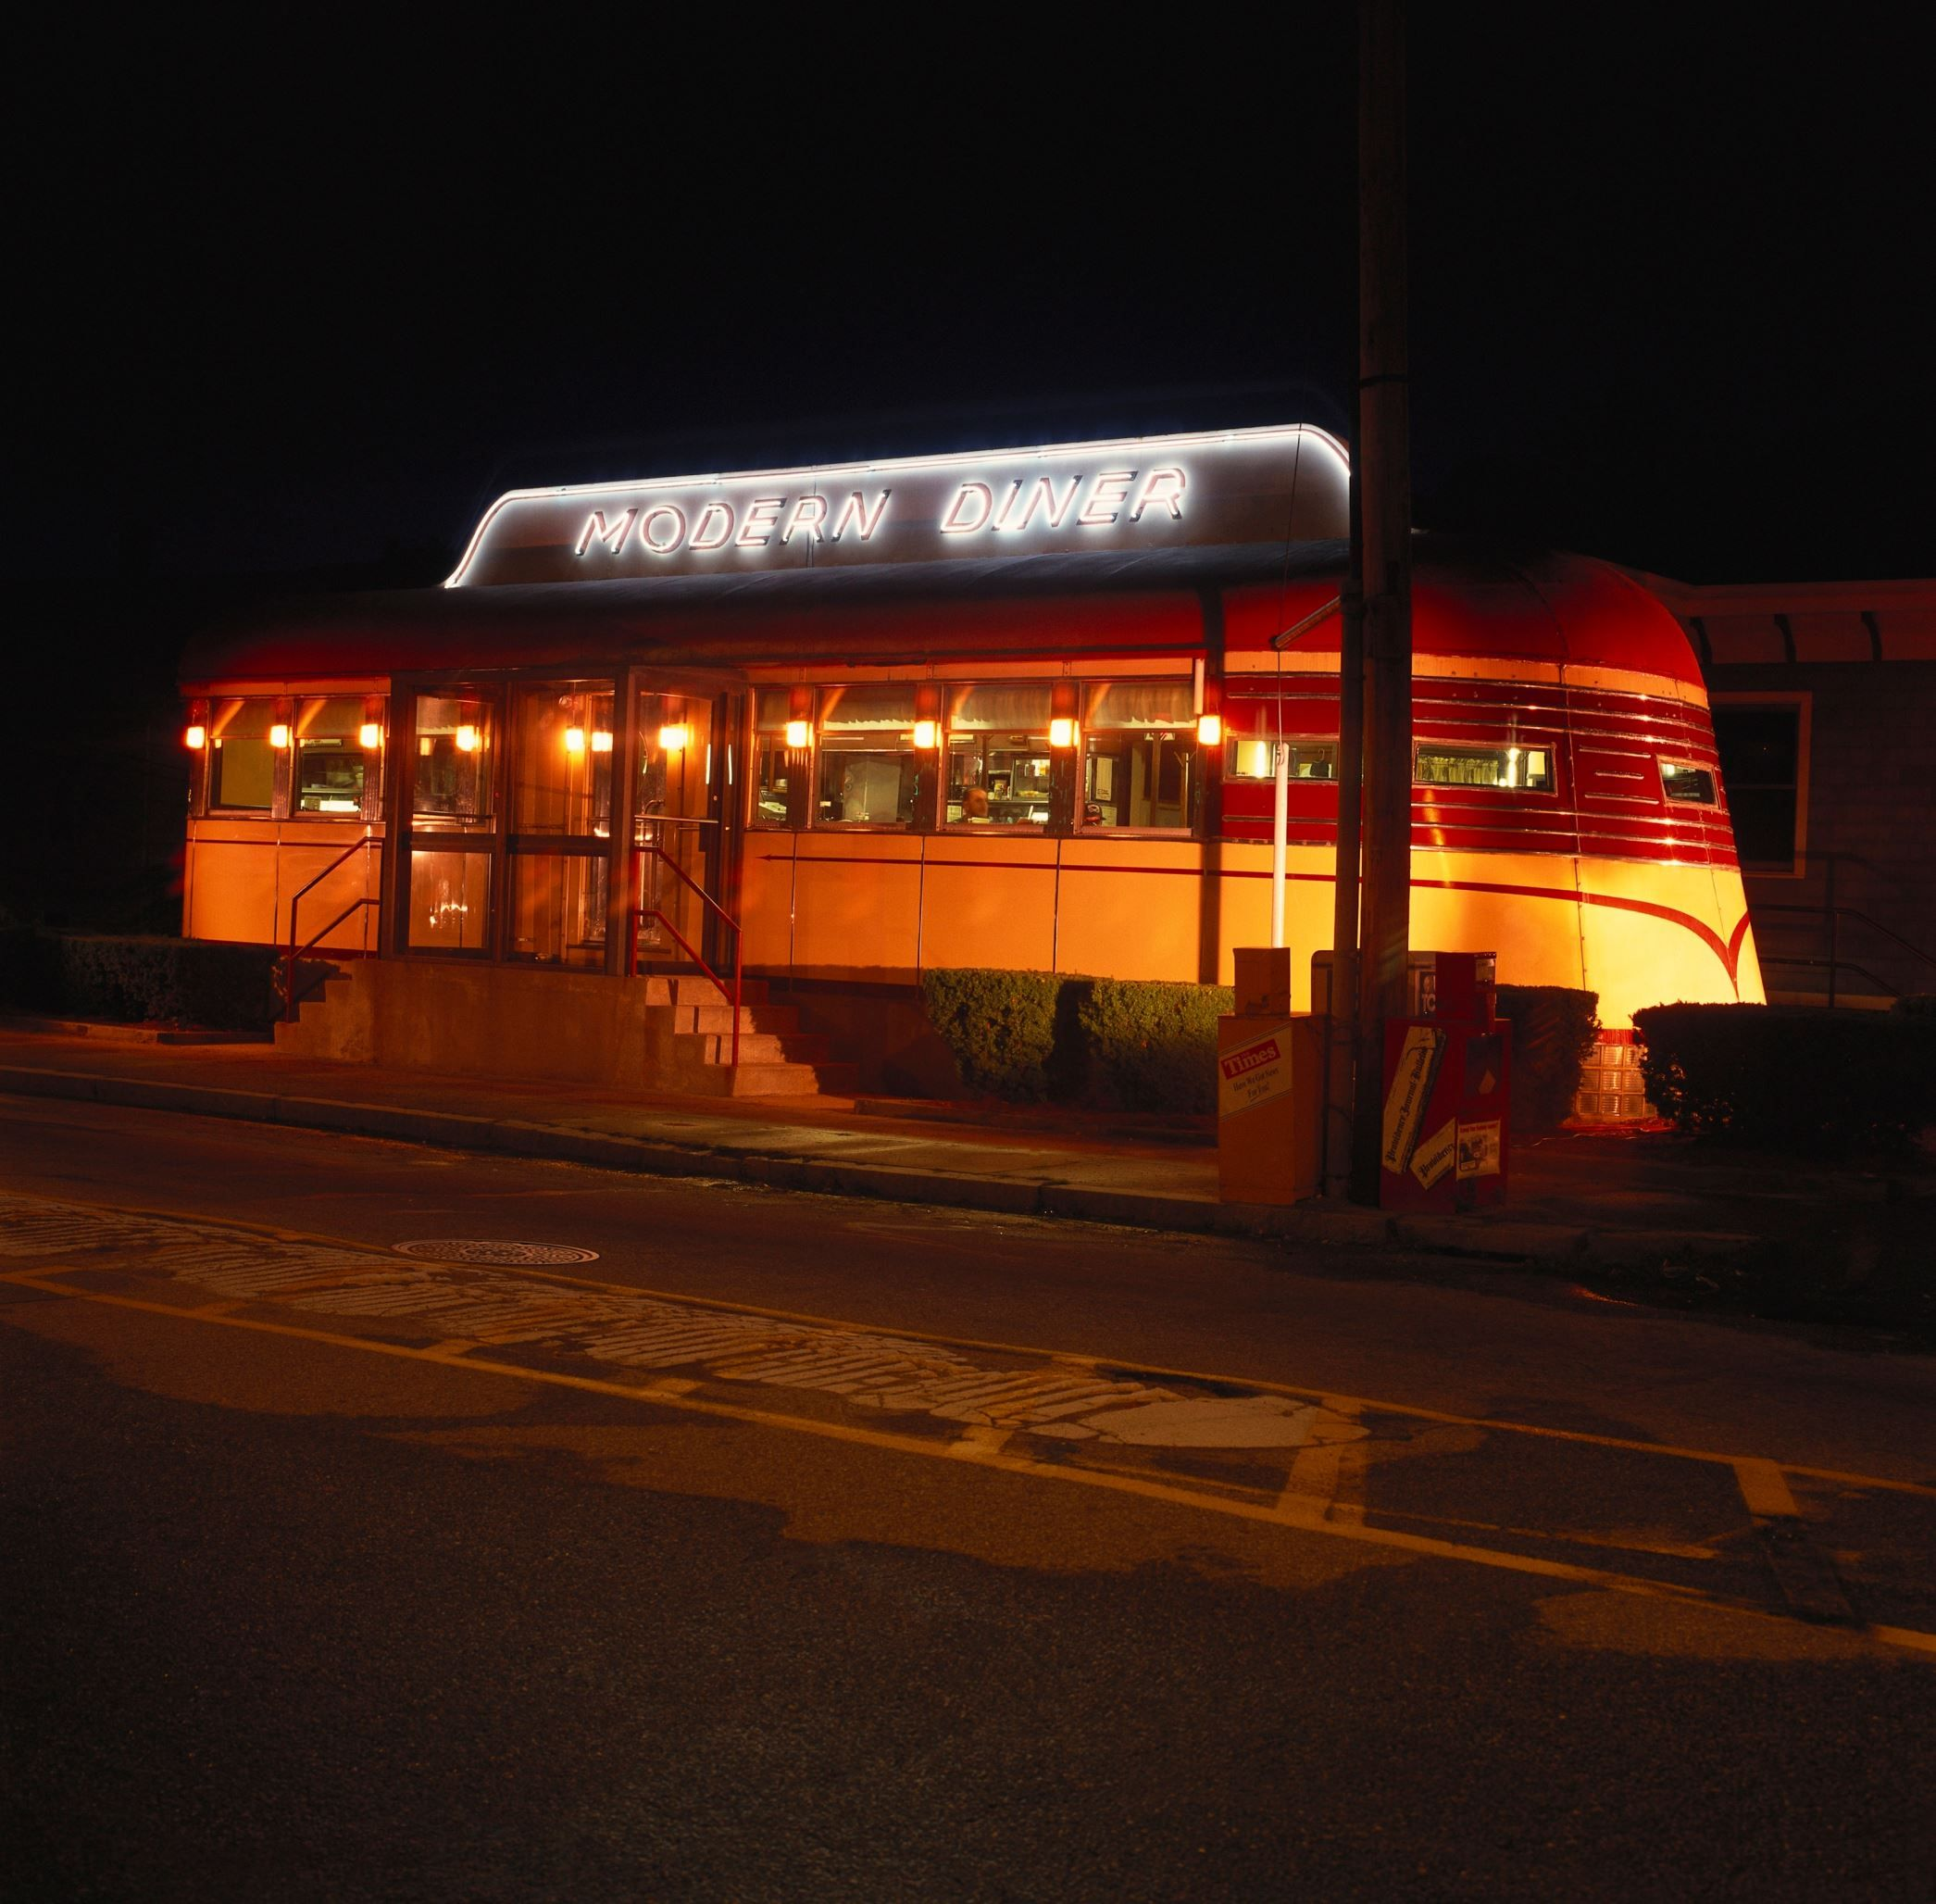 The Best Diners In Every State Rhode Island Modern Diner Best Diner Diner American Diner